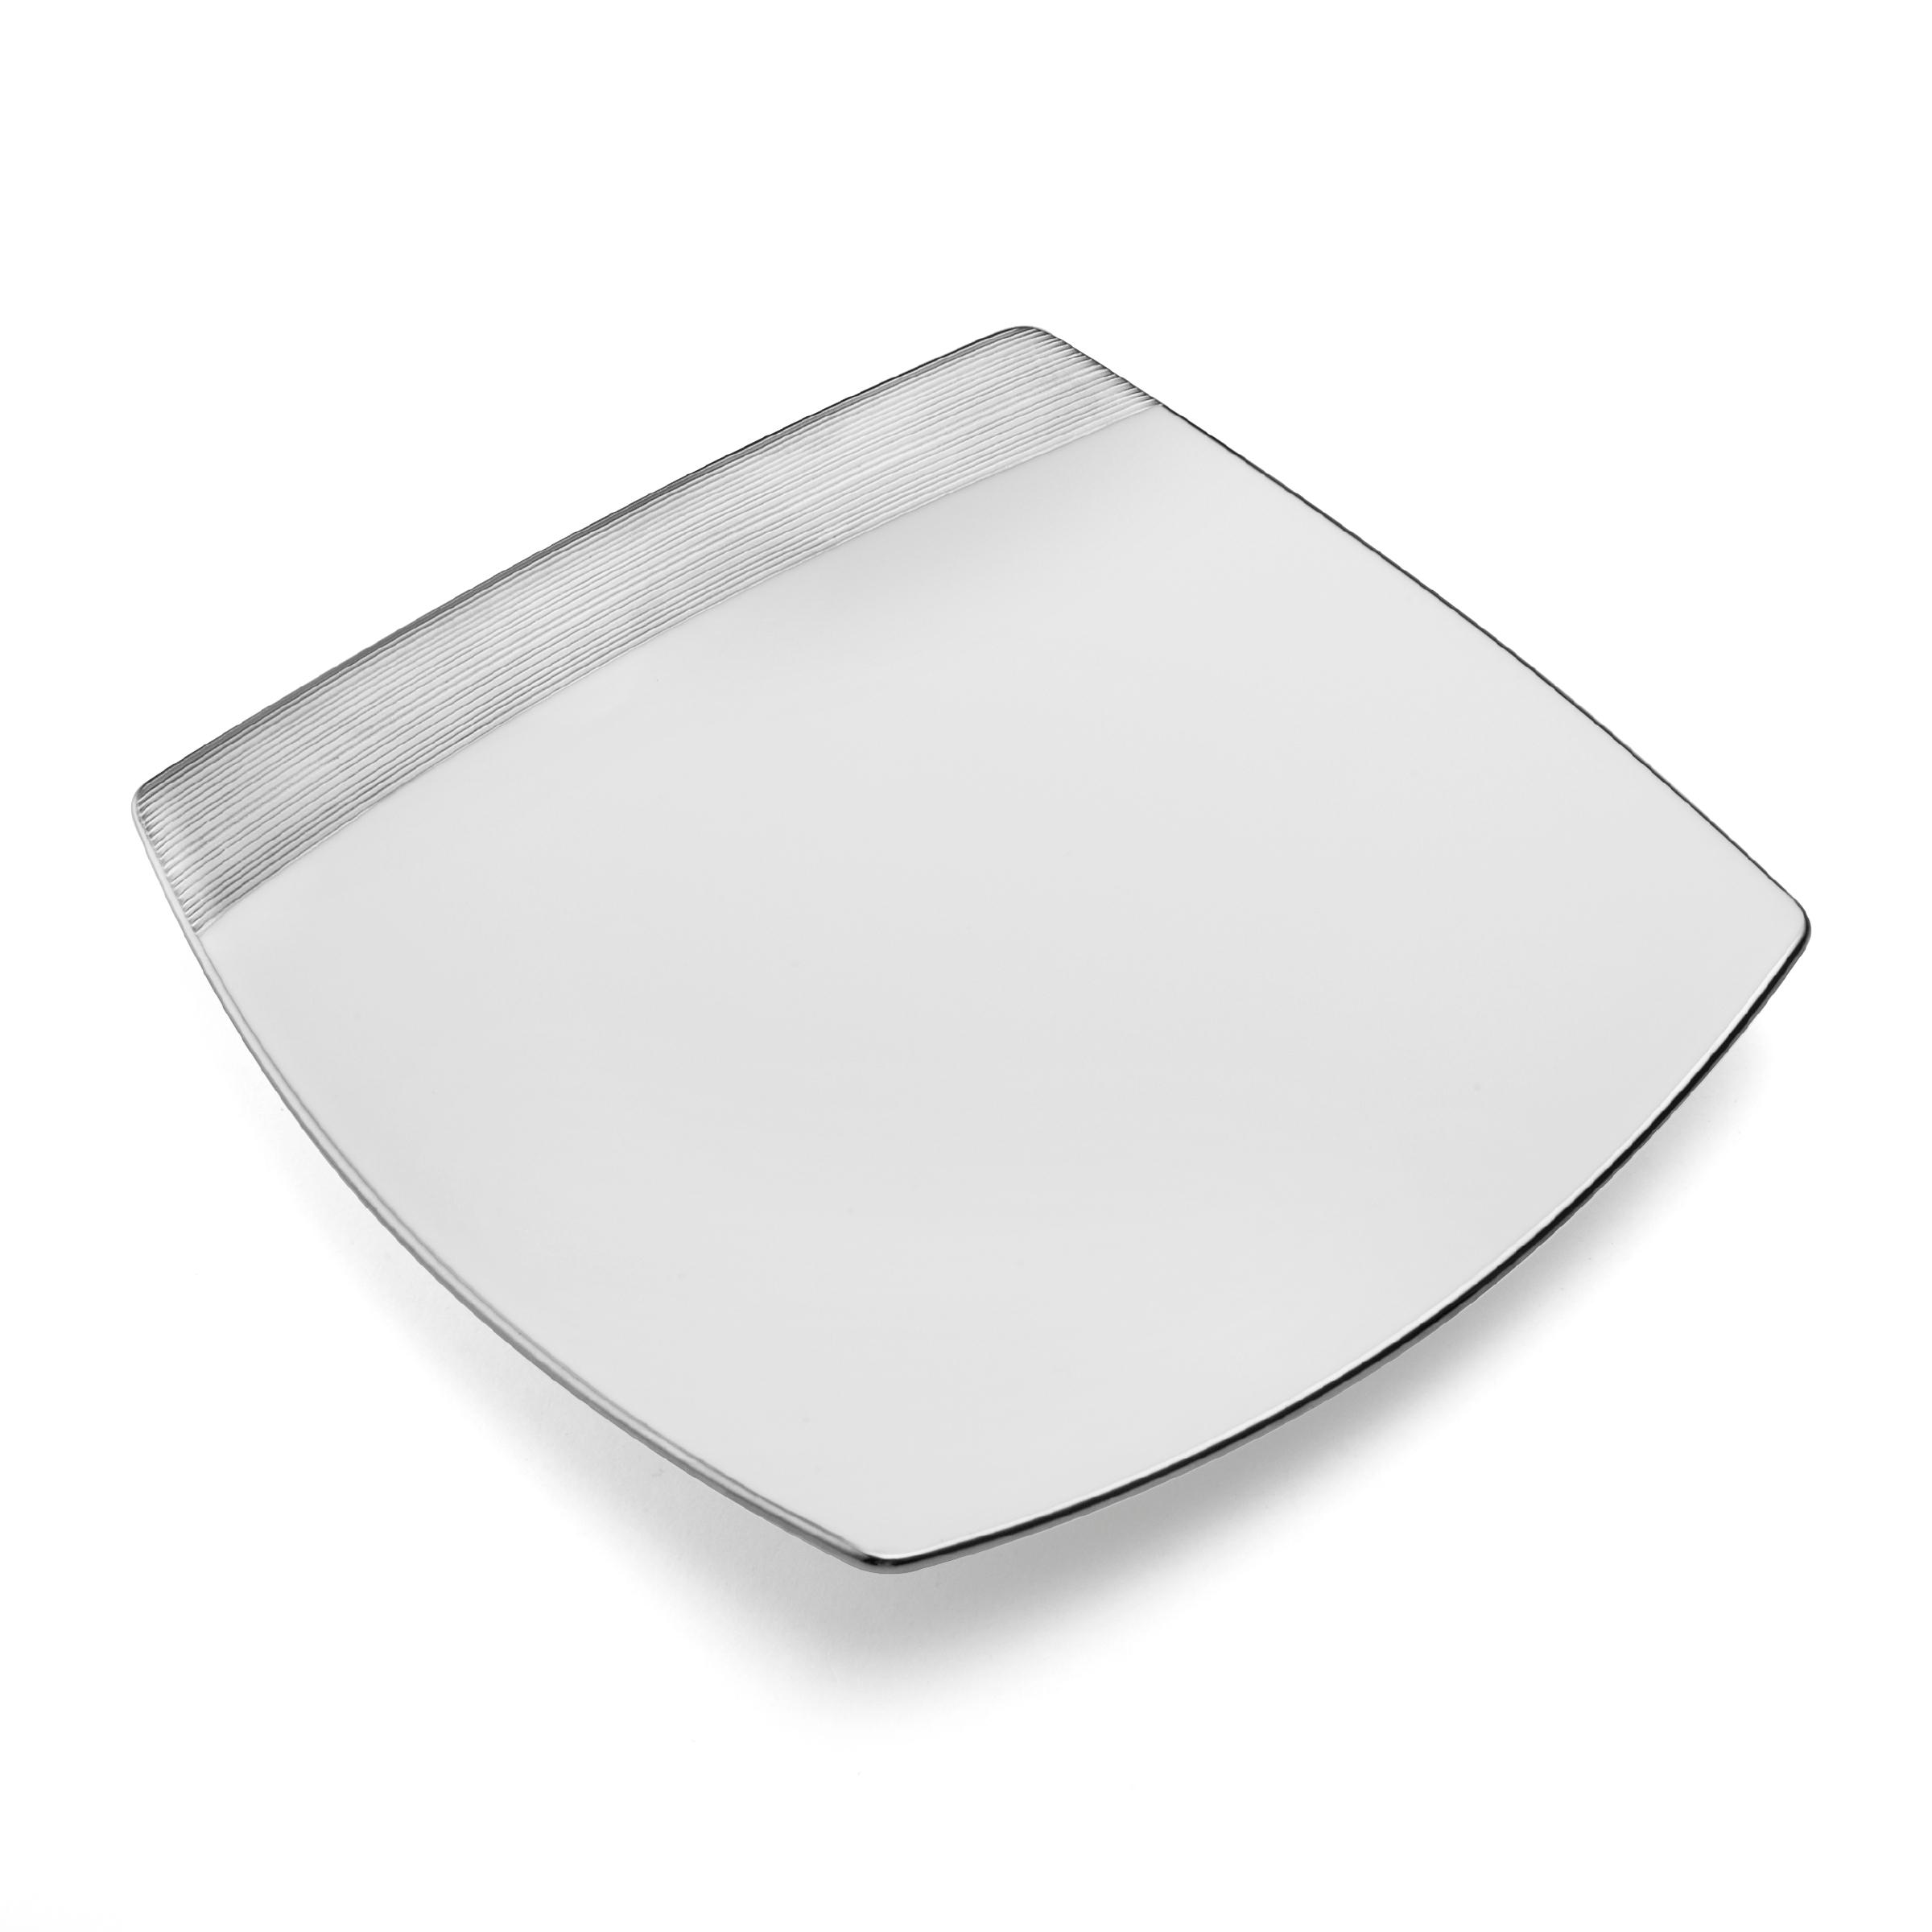 View larger  sc 1 st  Amazon.com : mikasa square dinnerware - Pezcame.Com